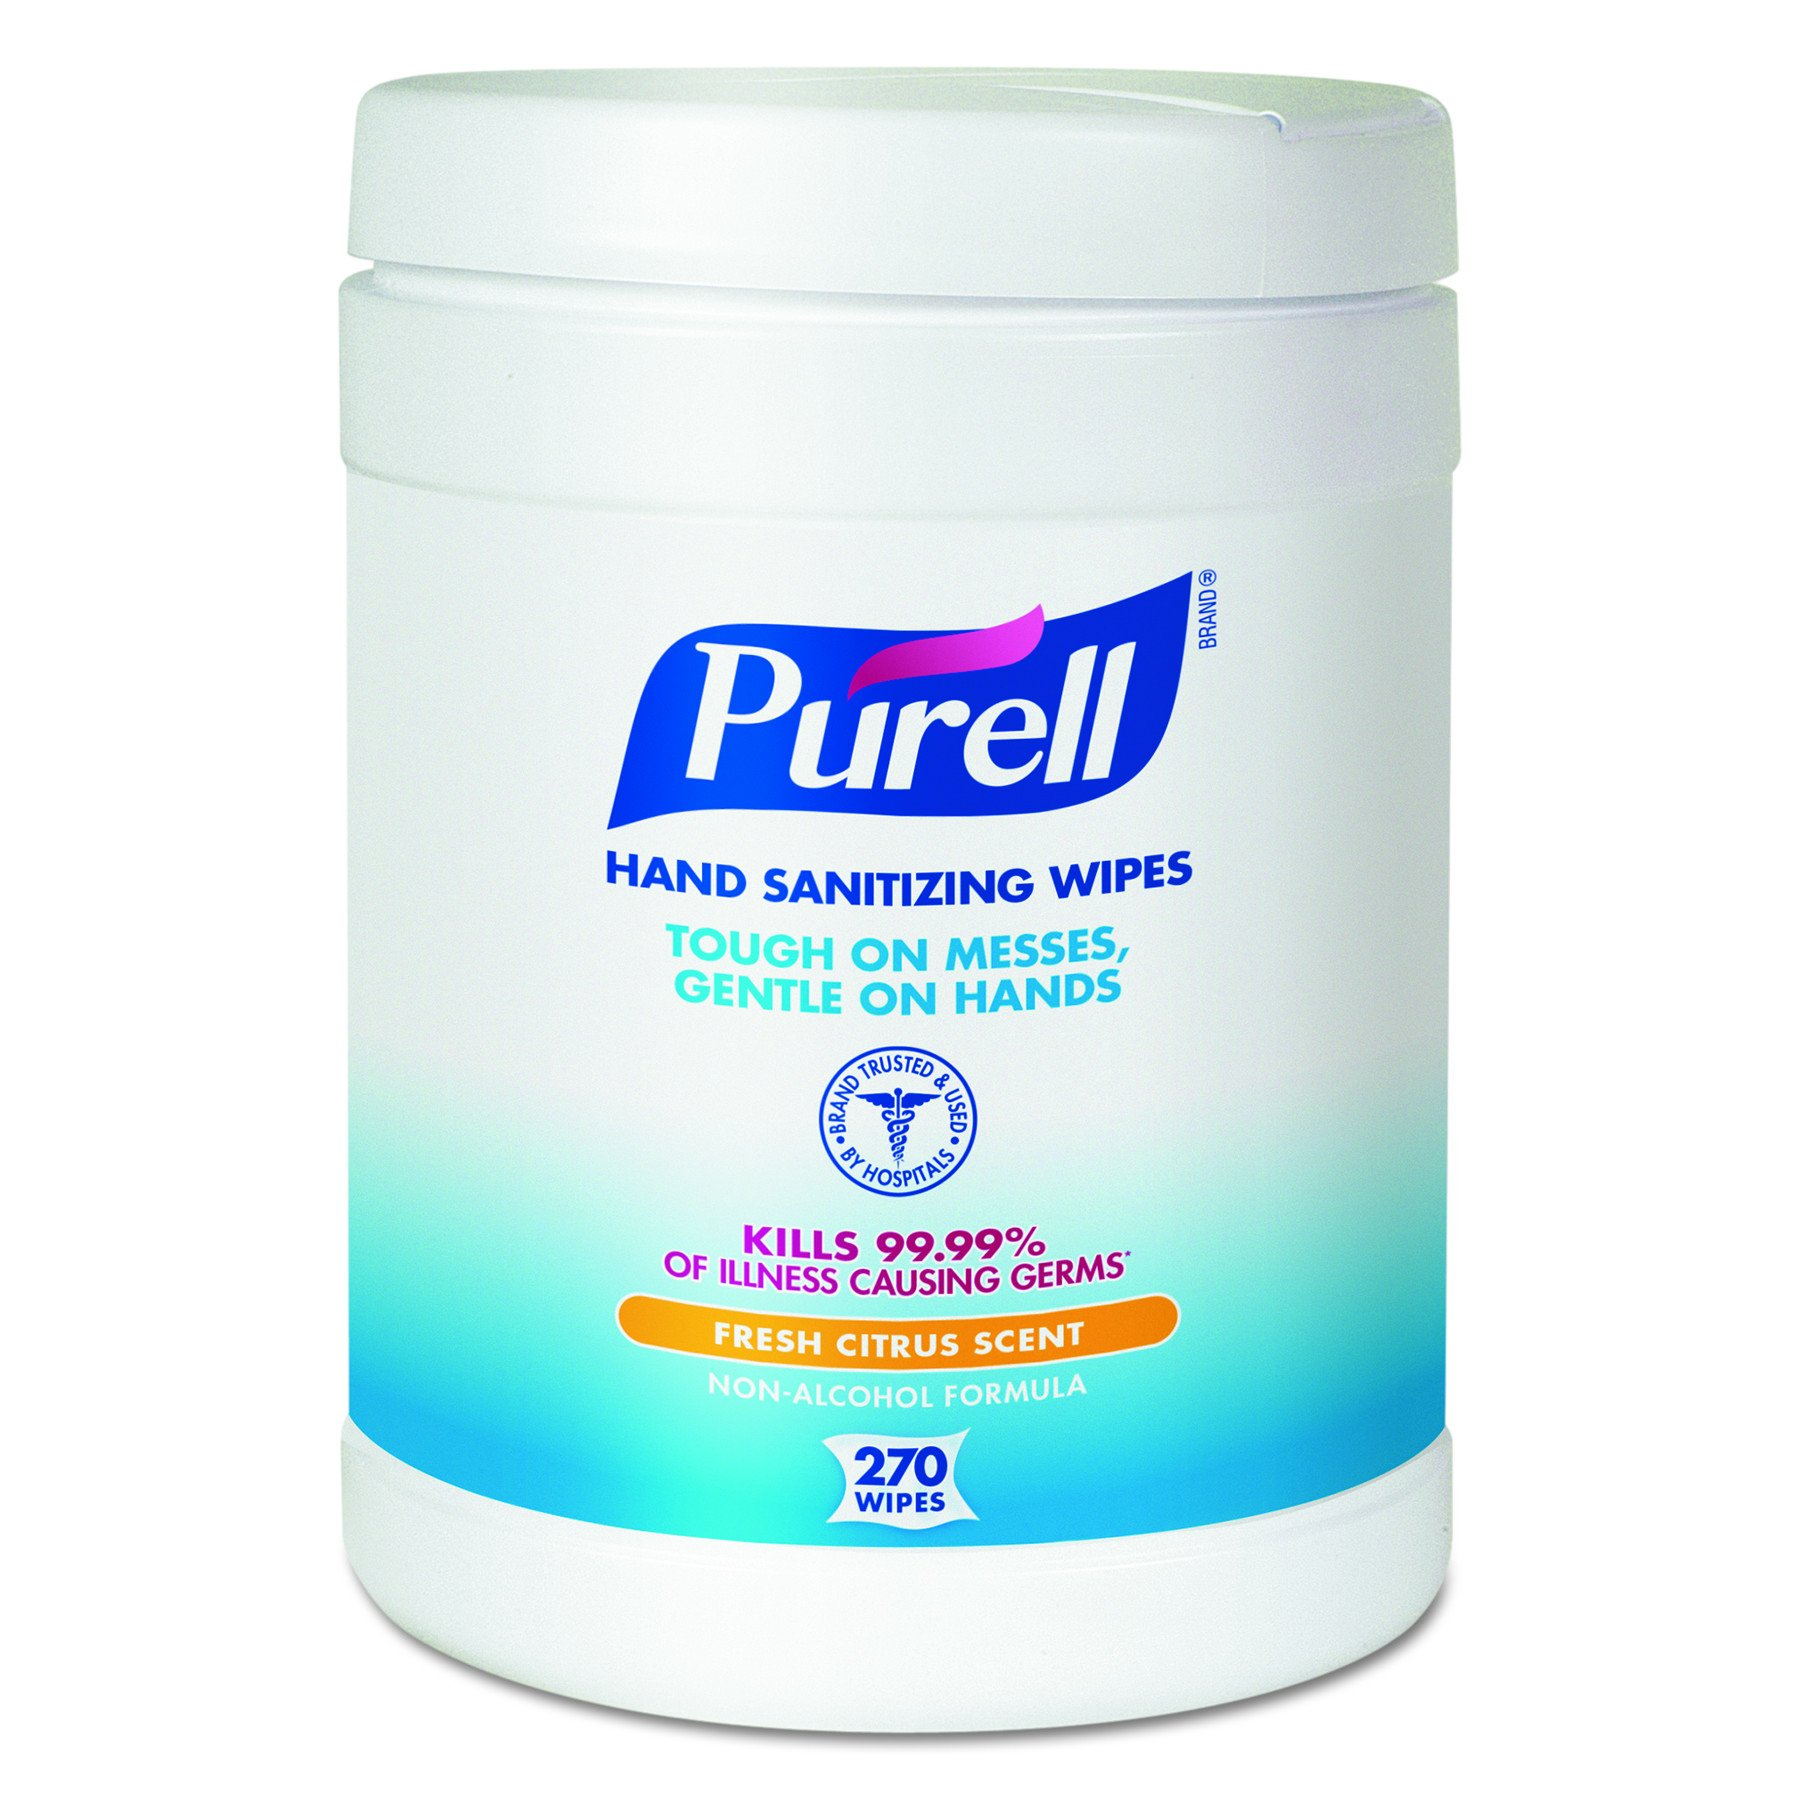 PURELL Hand Sanitizing Wipes -  Disinfecting Wipes with Fresh Citrus Scent, 270 Count in Eco-Fit Canister  (Case of 6) - 9113-06